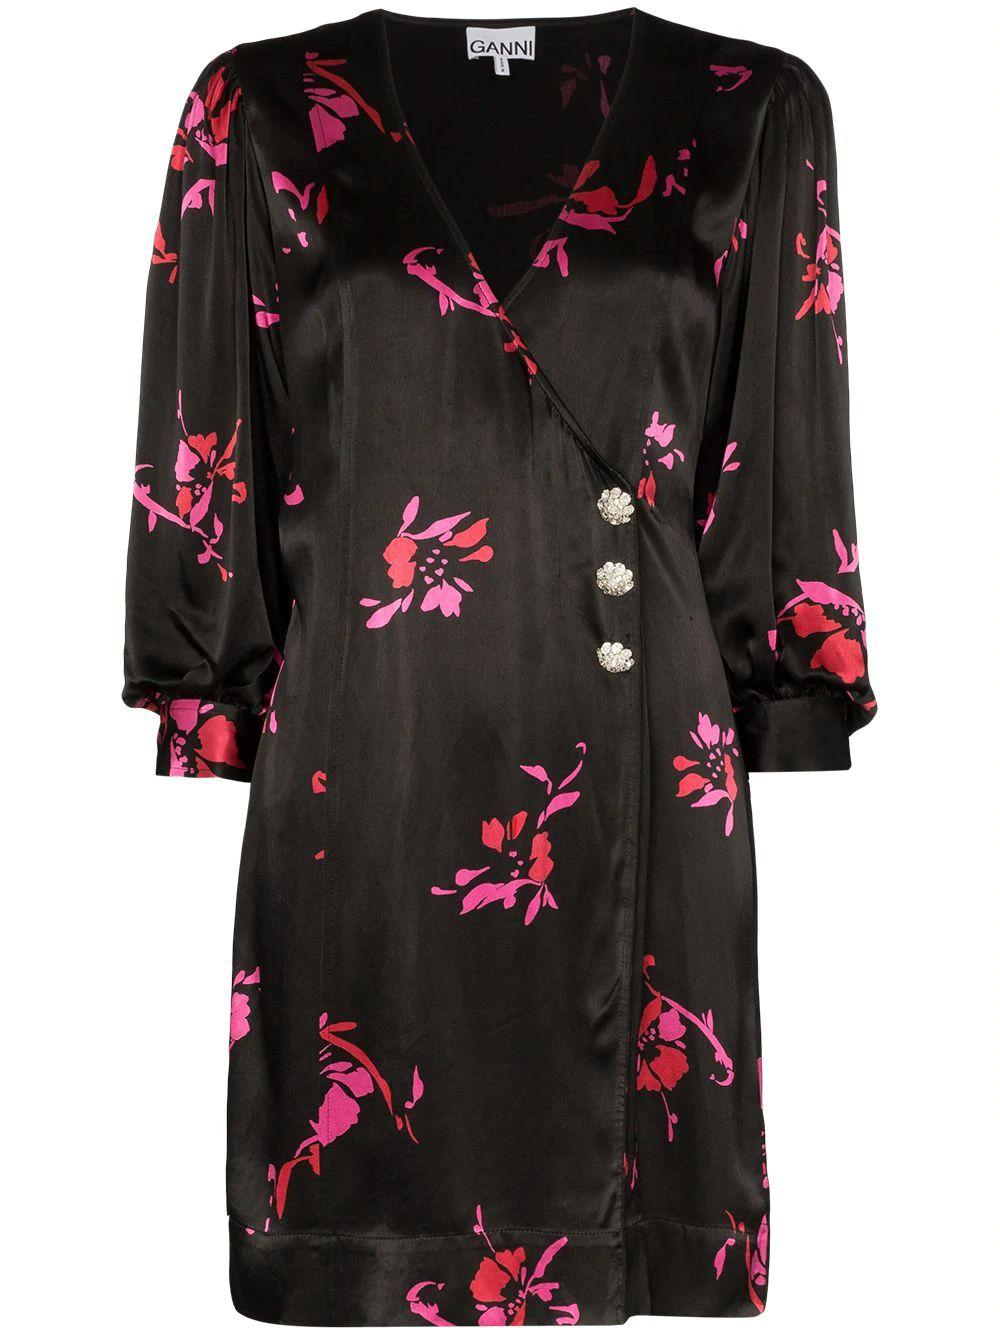 Heavy Satin Floral Print Dress